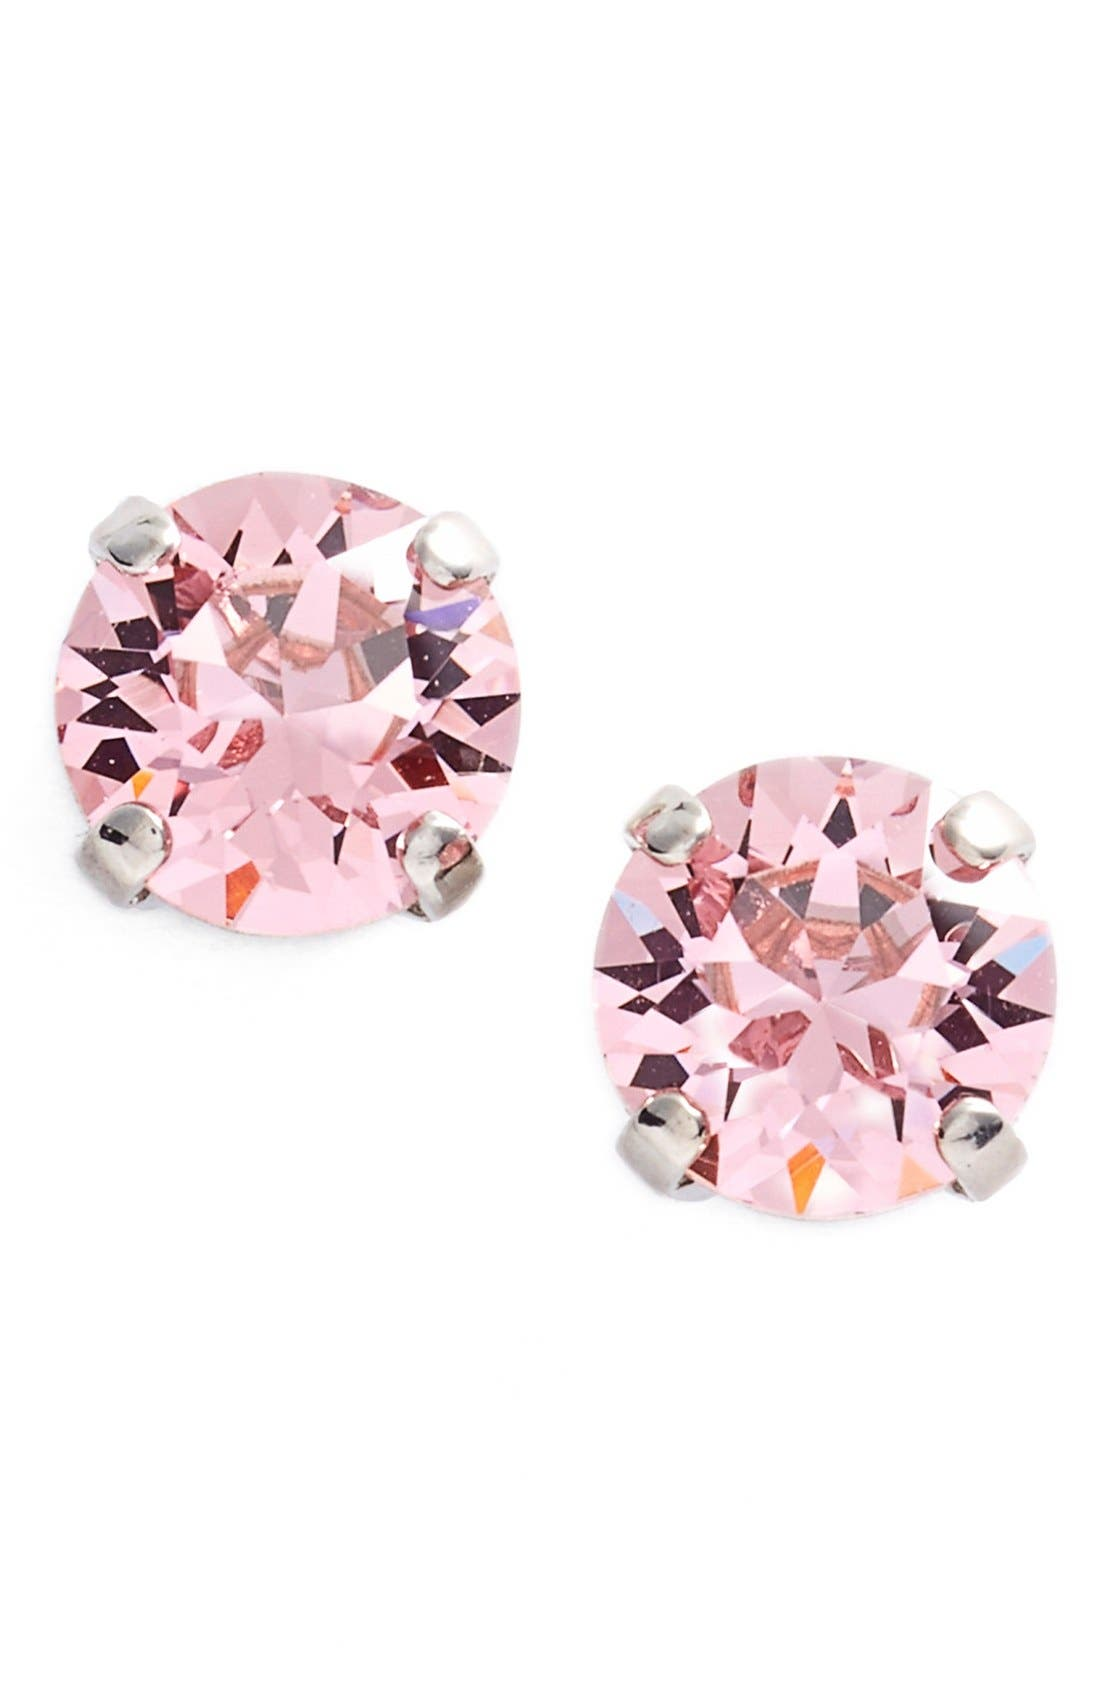 'Grace' Crystal Stud Earrings,                             Main thumbnail 1, color,                             650